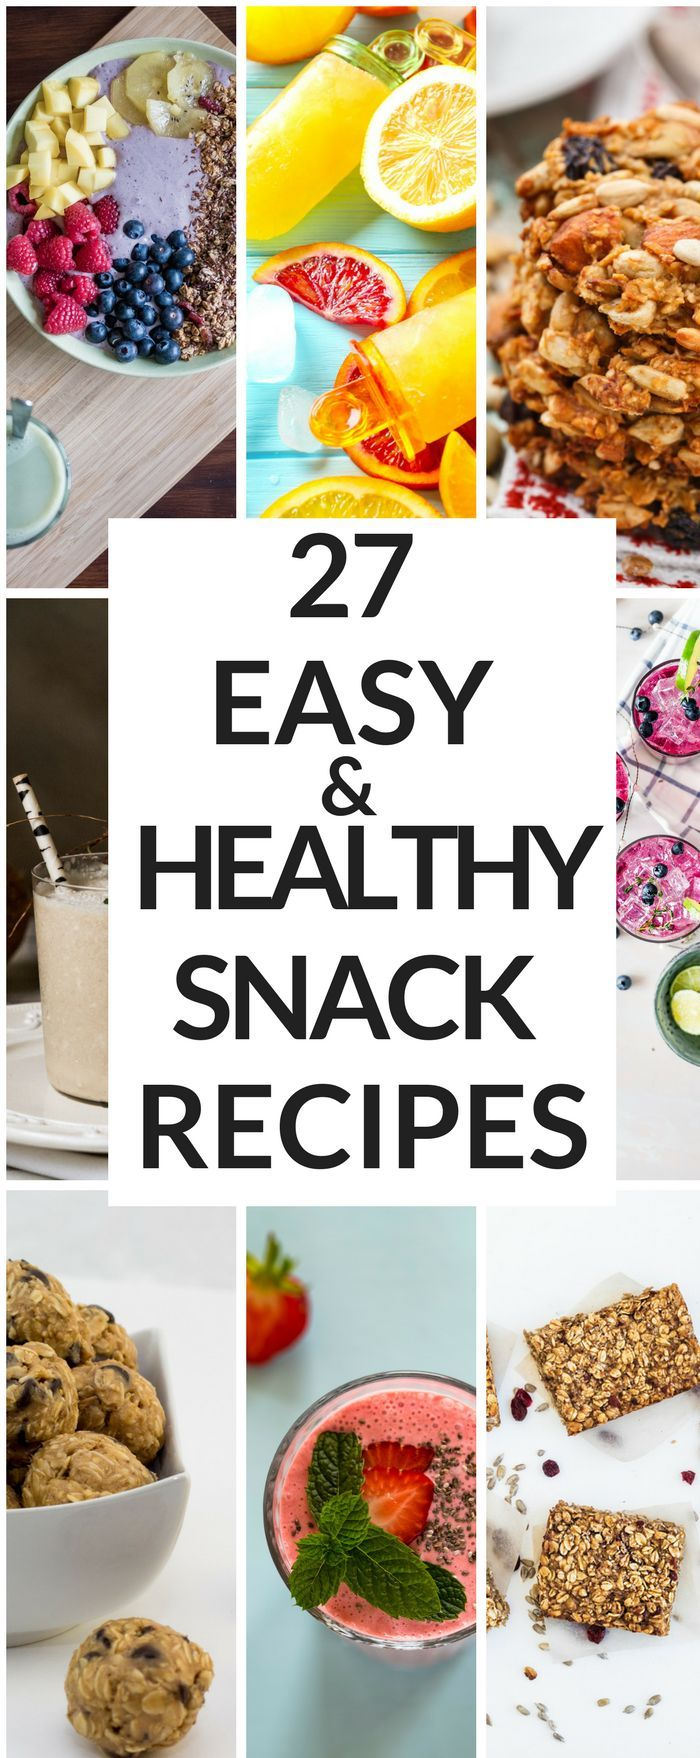 Looking for easy & healthy snack recipes? Whether you're searching for healthy snacks for weight loss or health snacks for kids on the go, this list of 27 recipes has you covered! From clean eating snacks & protein filled fat burning energy bites to gluten free muffins there's something for every diet in this collection of healthy snacks!